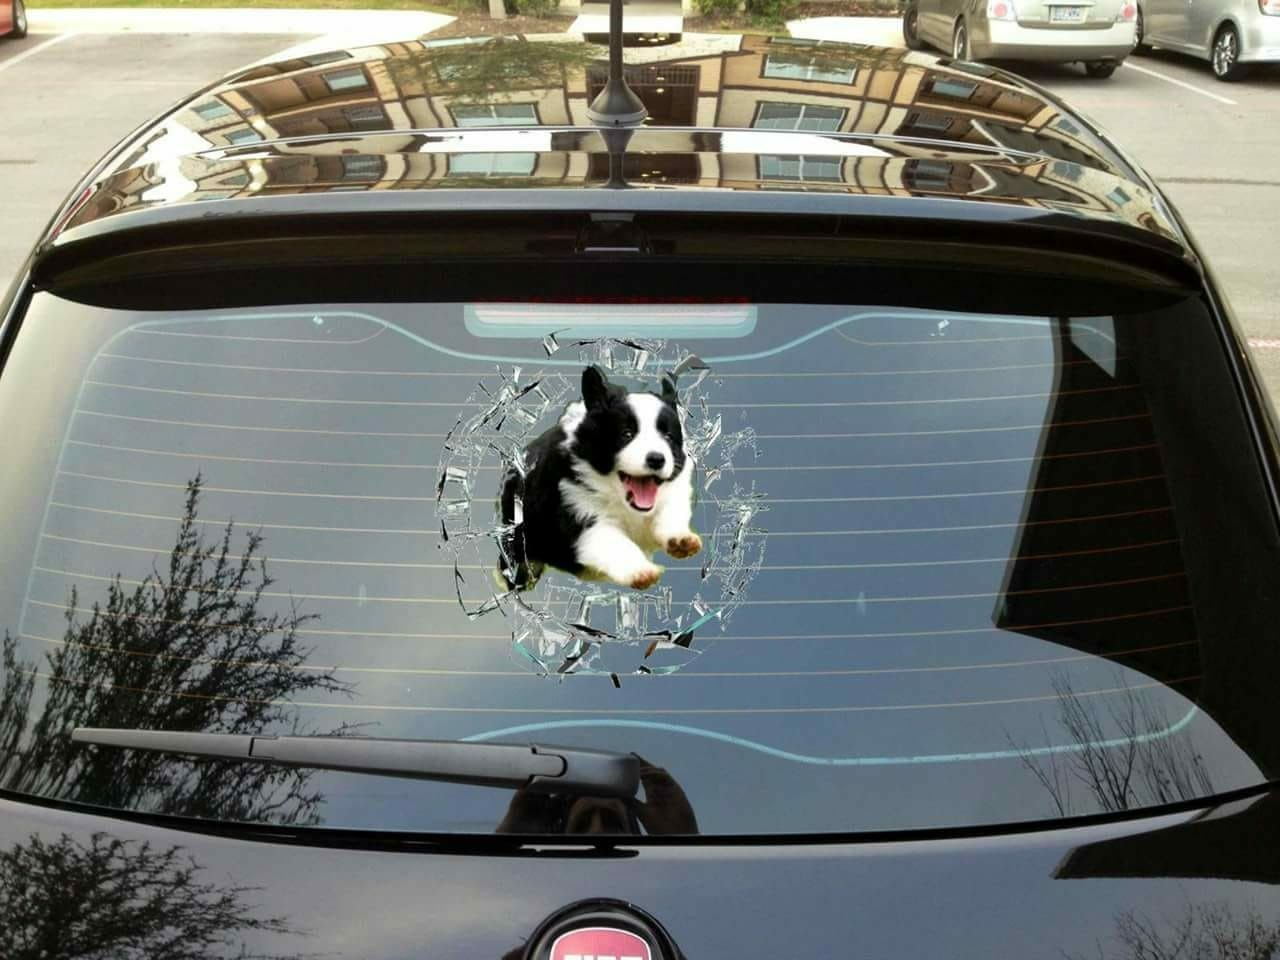 Border Collie Sticker For Car Looks About Right Border Collie Humor Border Collie Puppies Collie Puppies